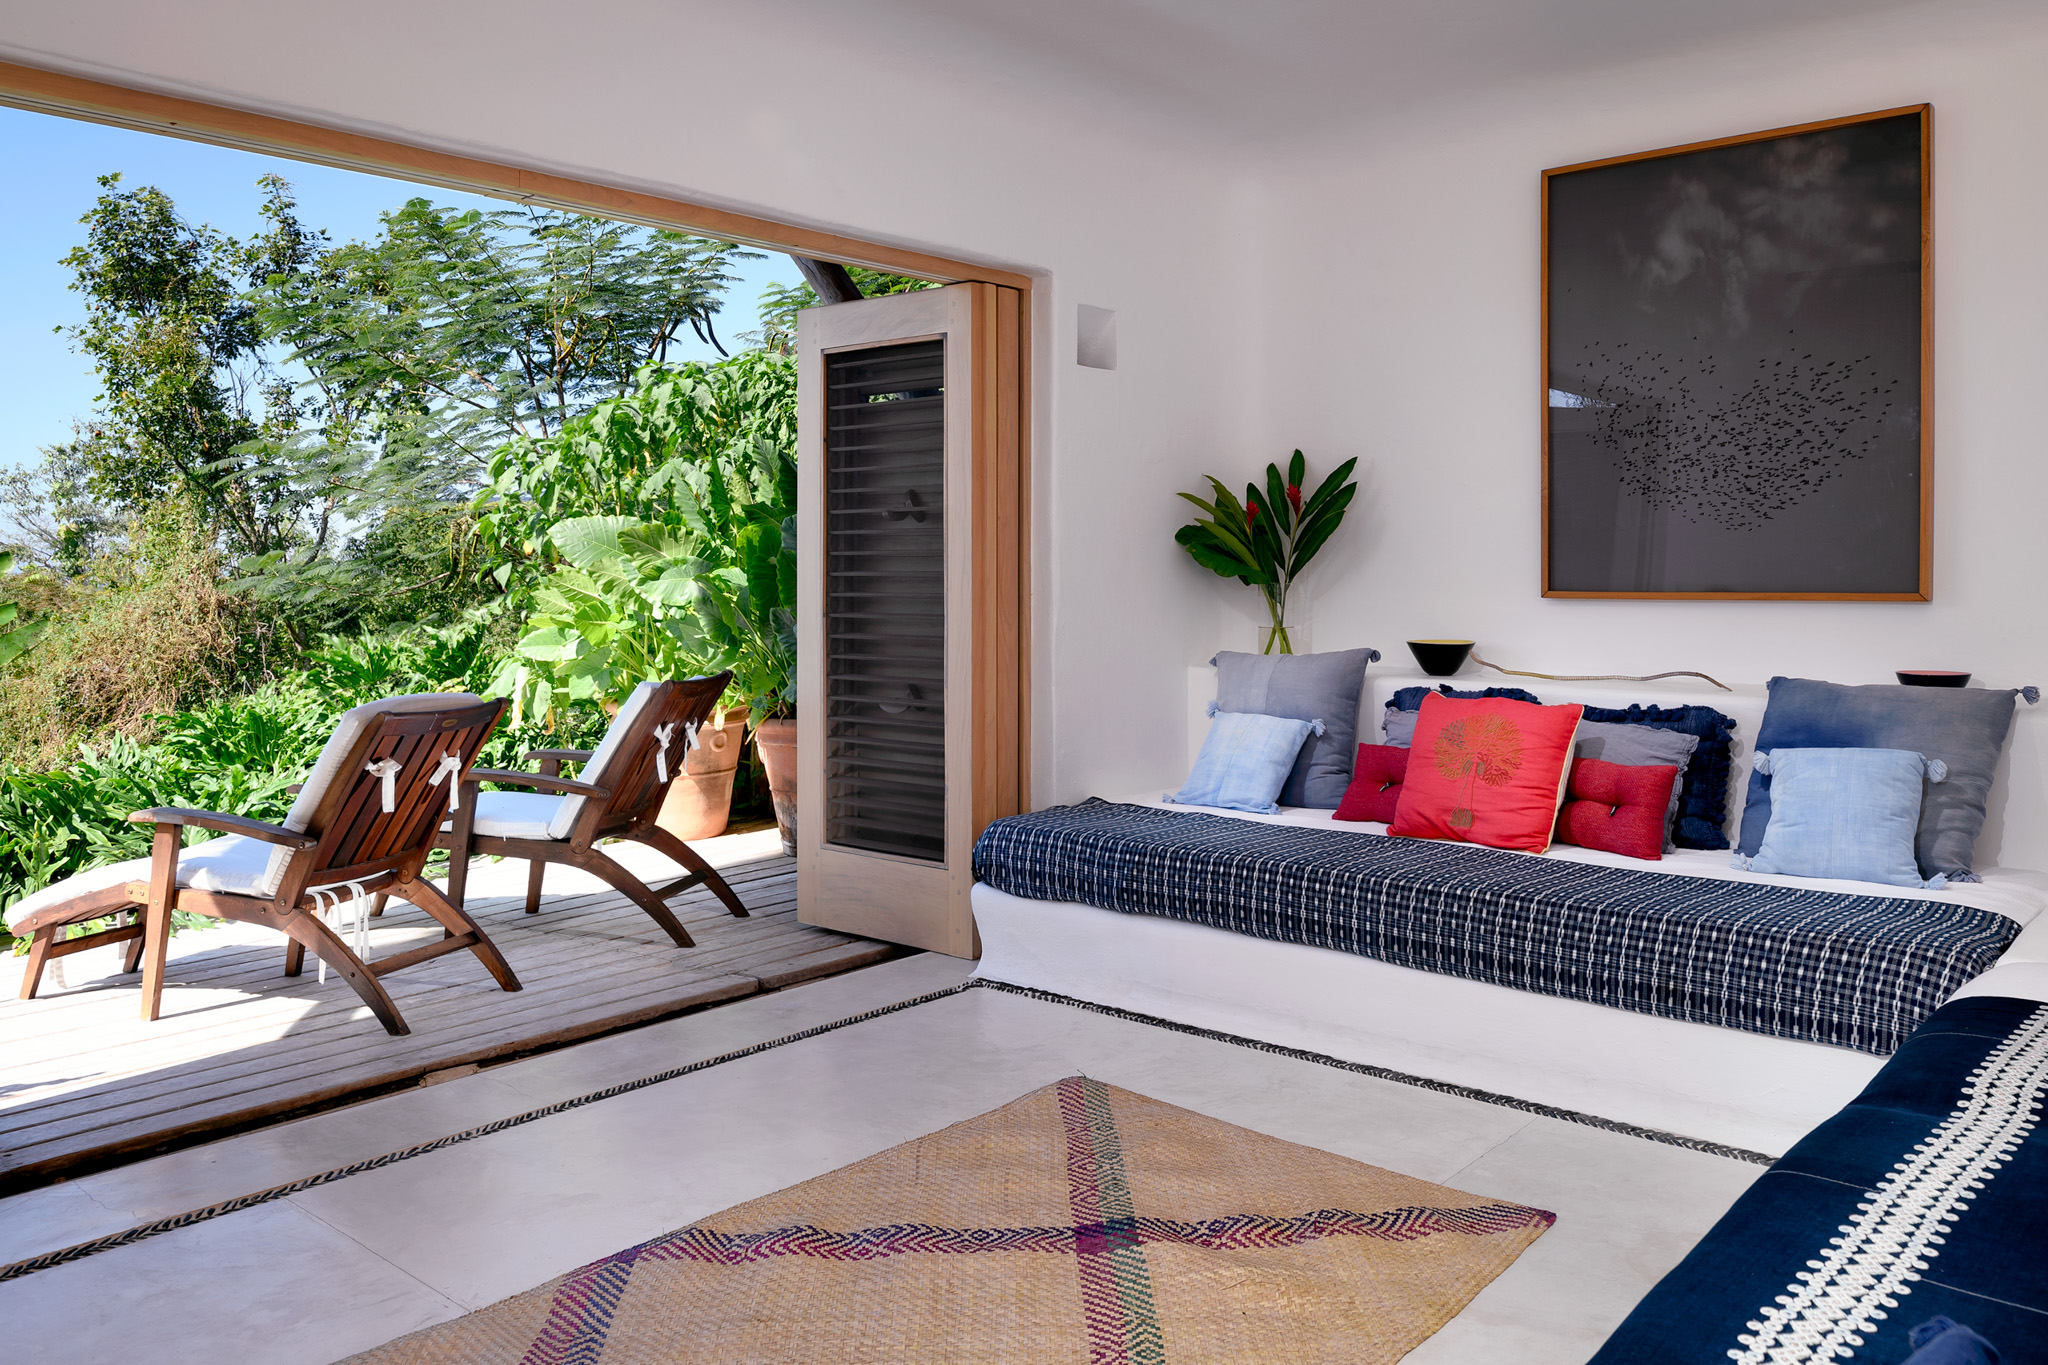 36-Bungalows and rooms.jpg